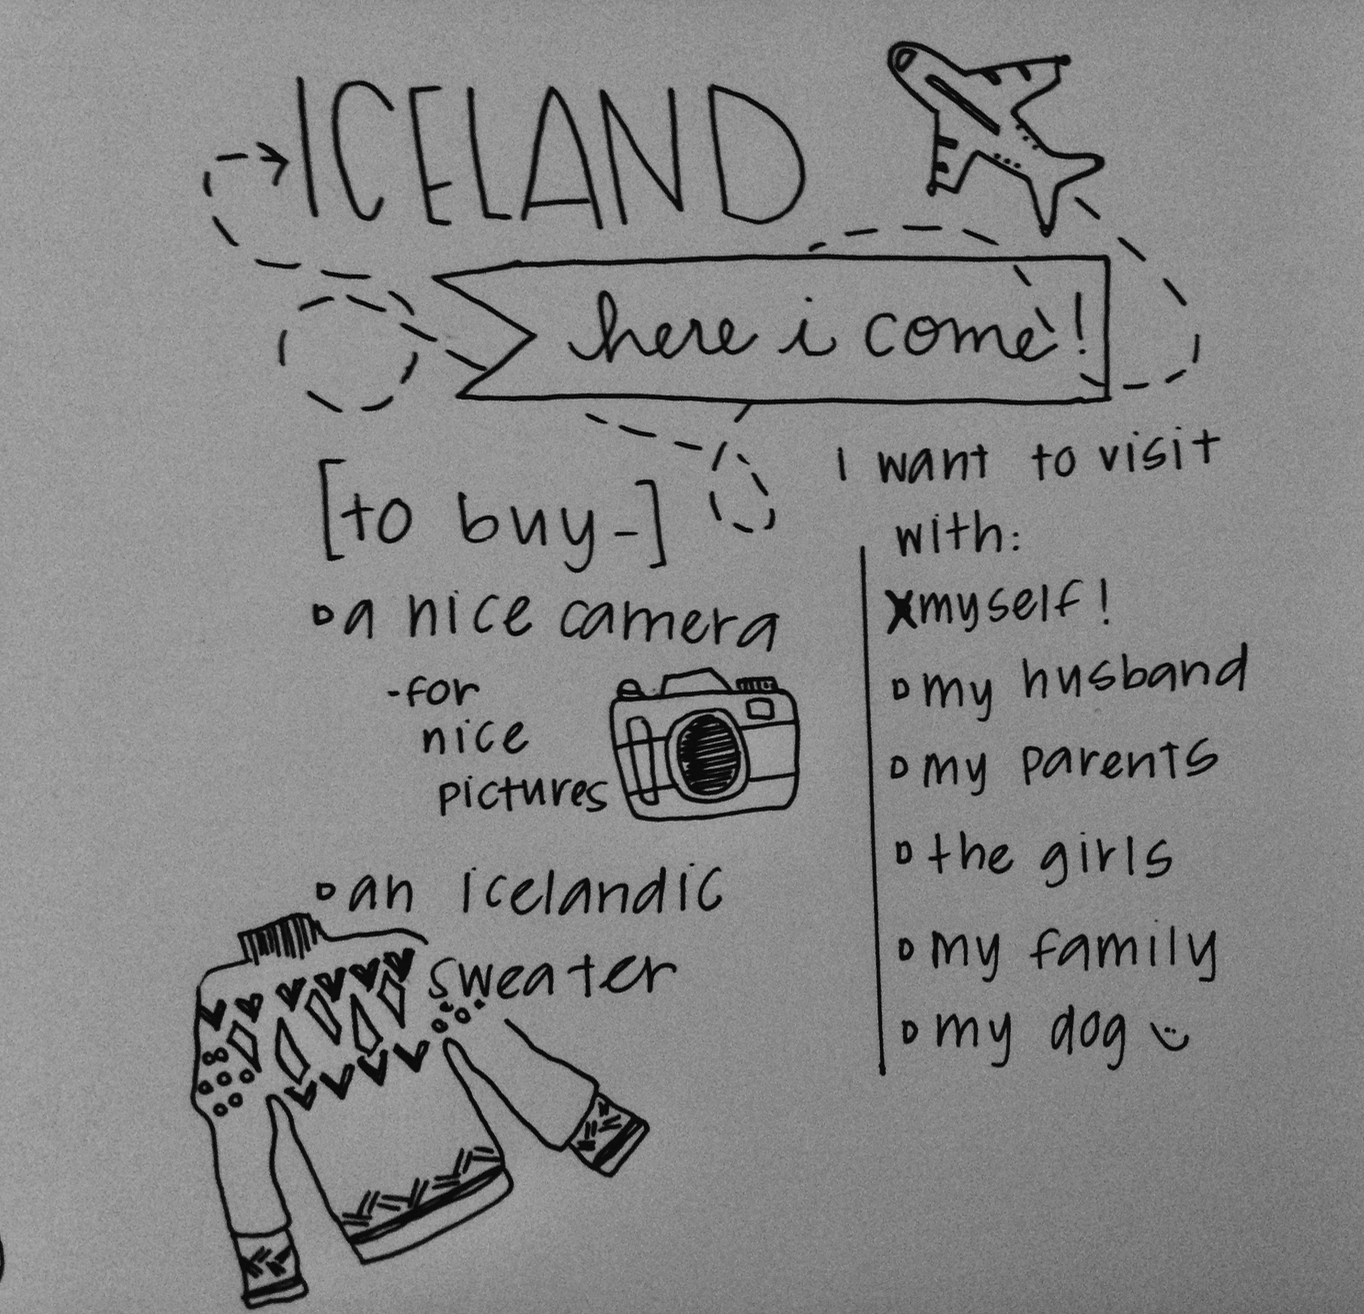 Visit Iceland with ILP